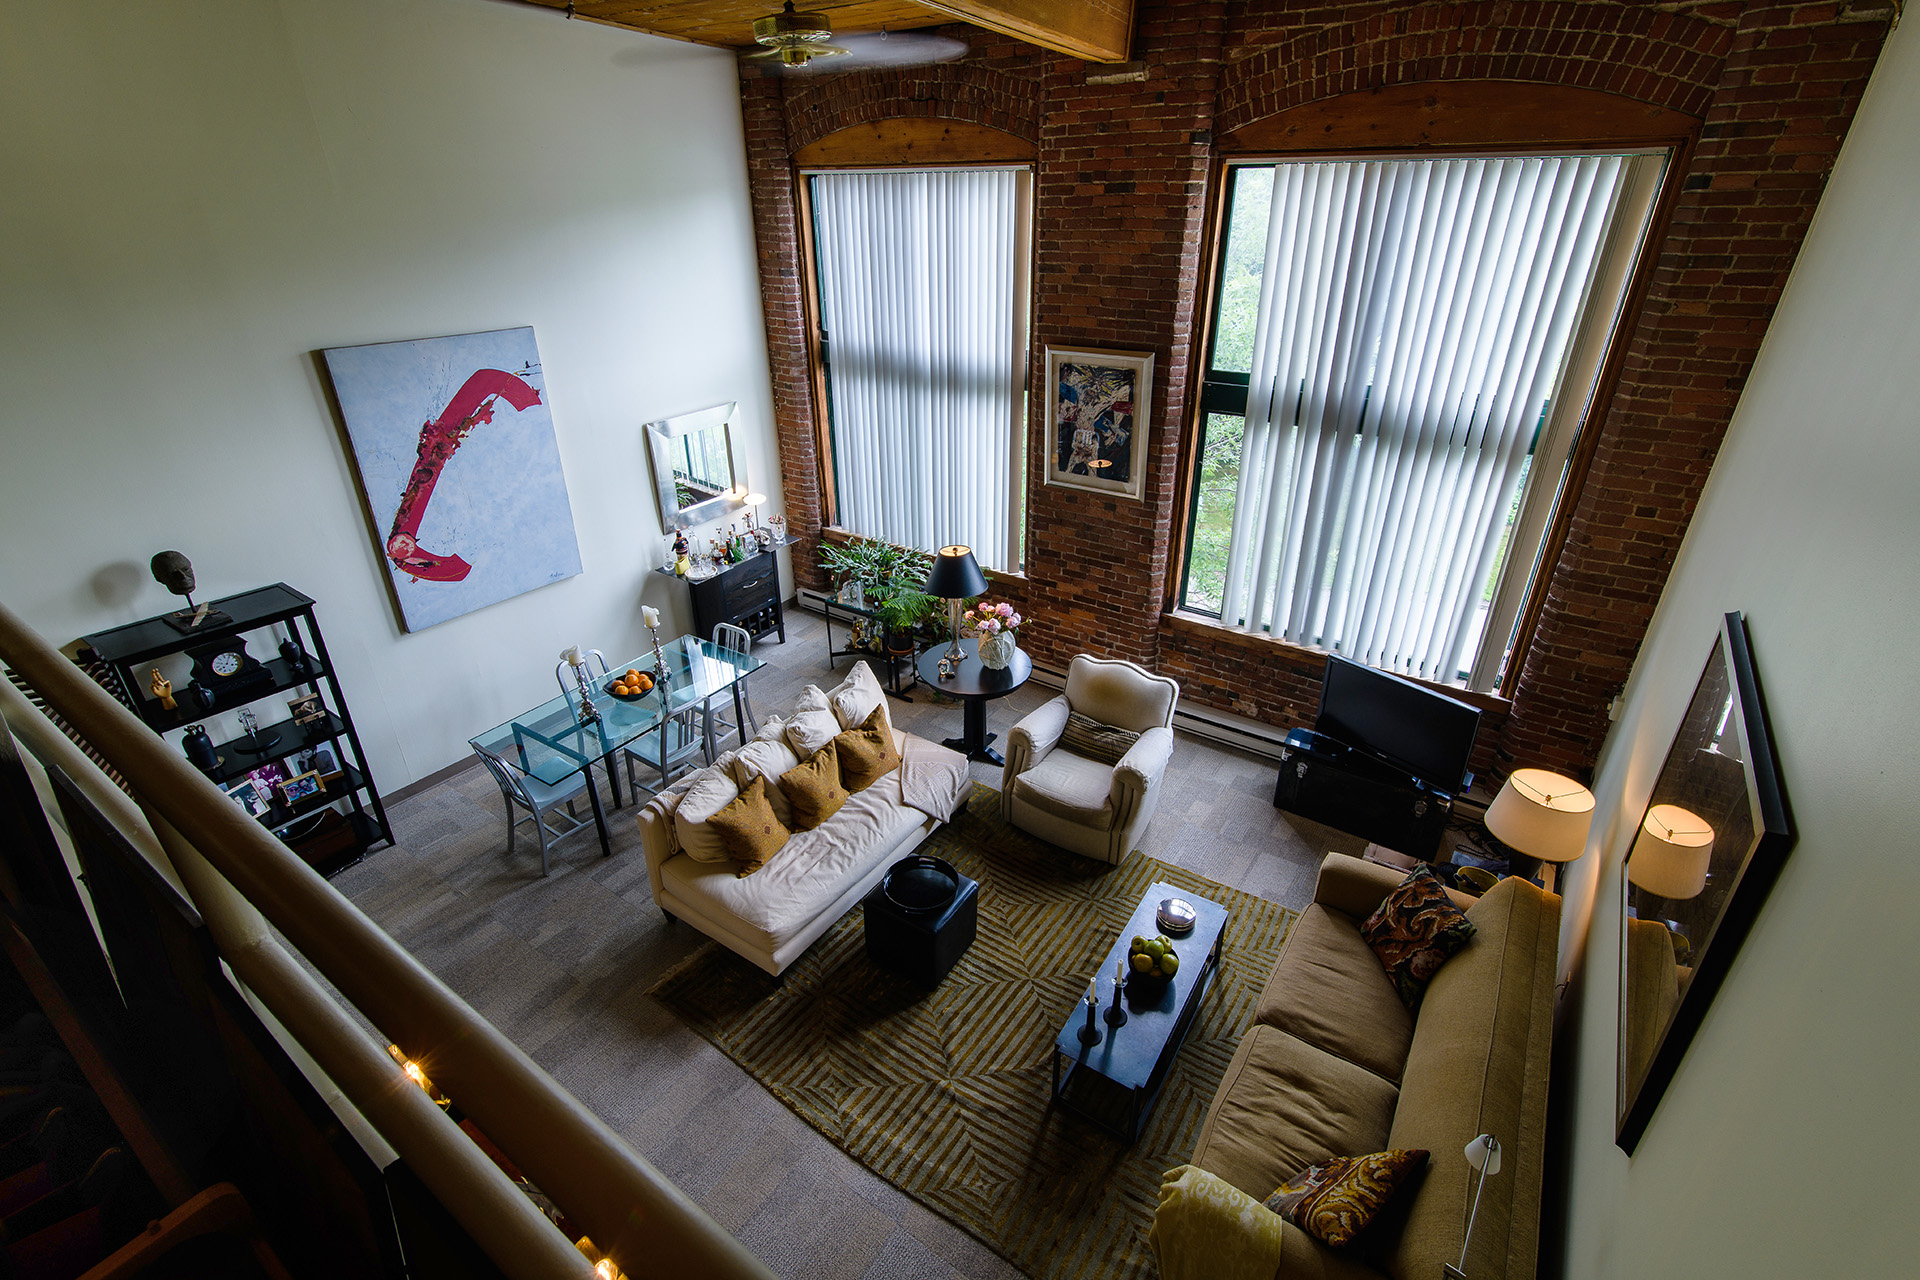 The Woolen Mill loft apartment features high ceilings